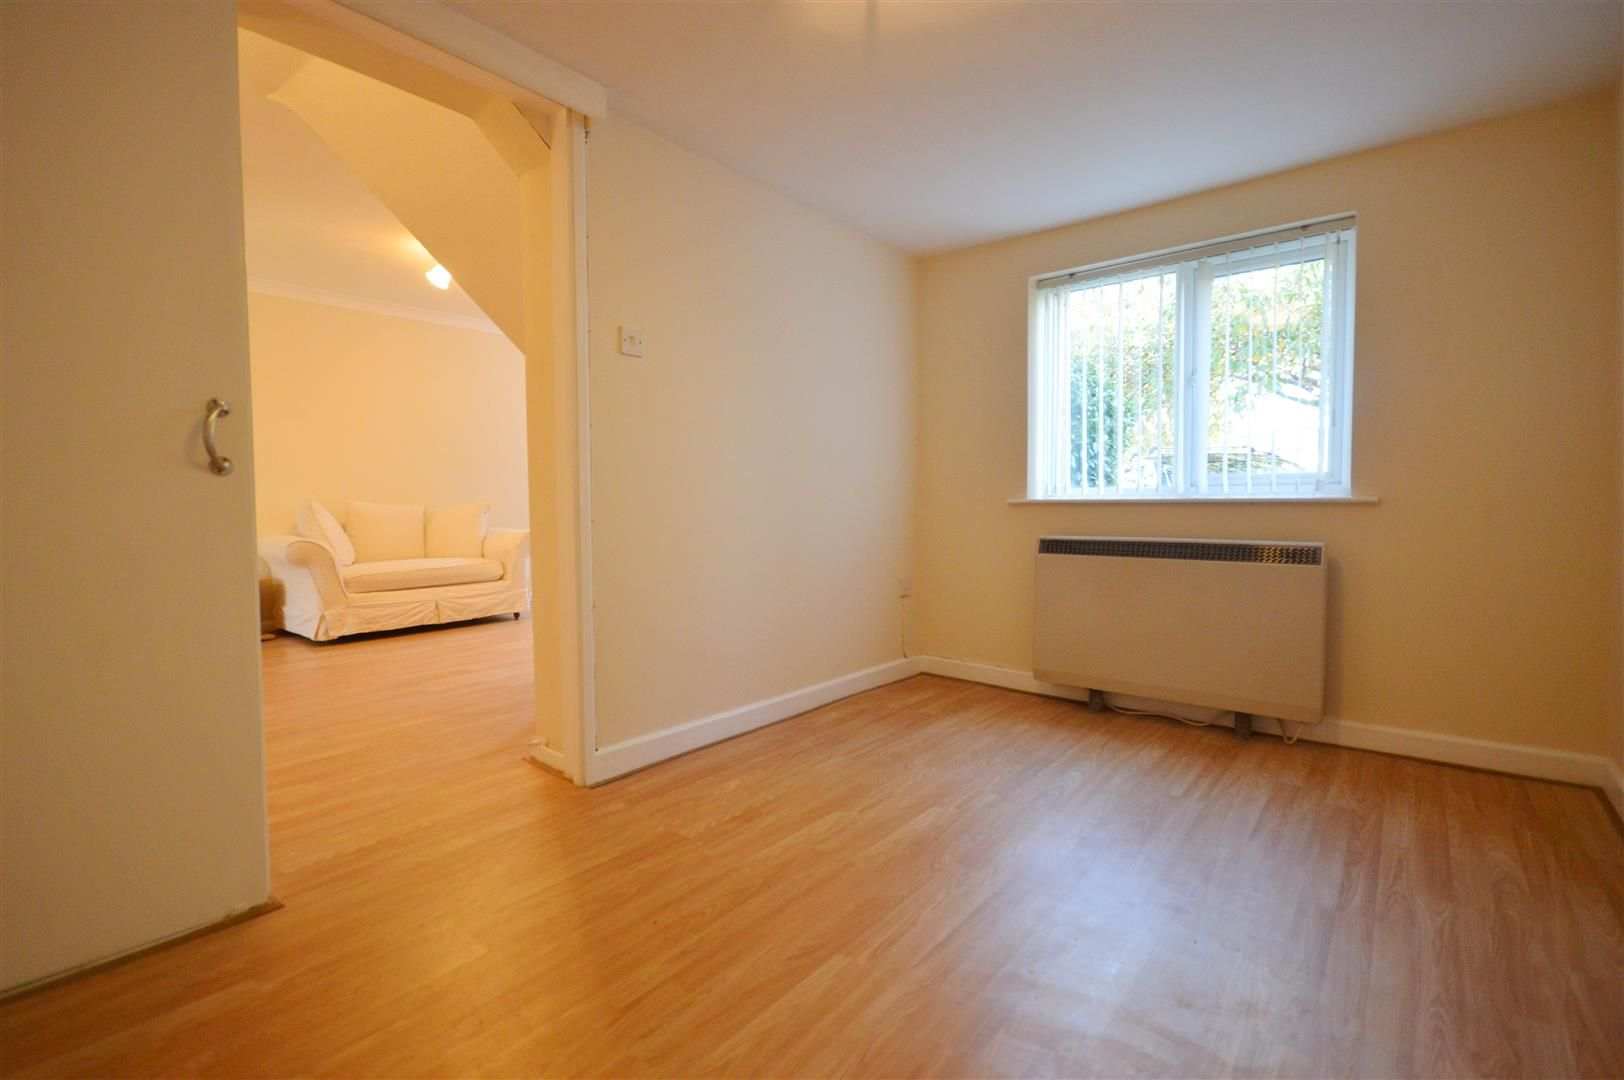 3 bed semi-detached to rent in Leominster  - Property Image 5